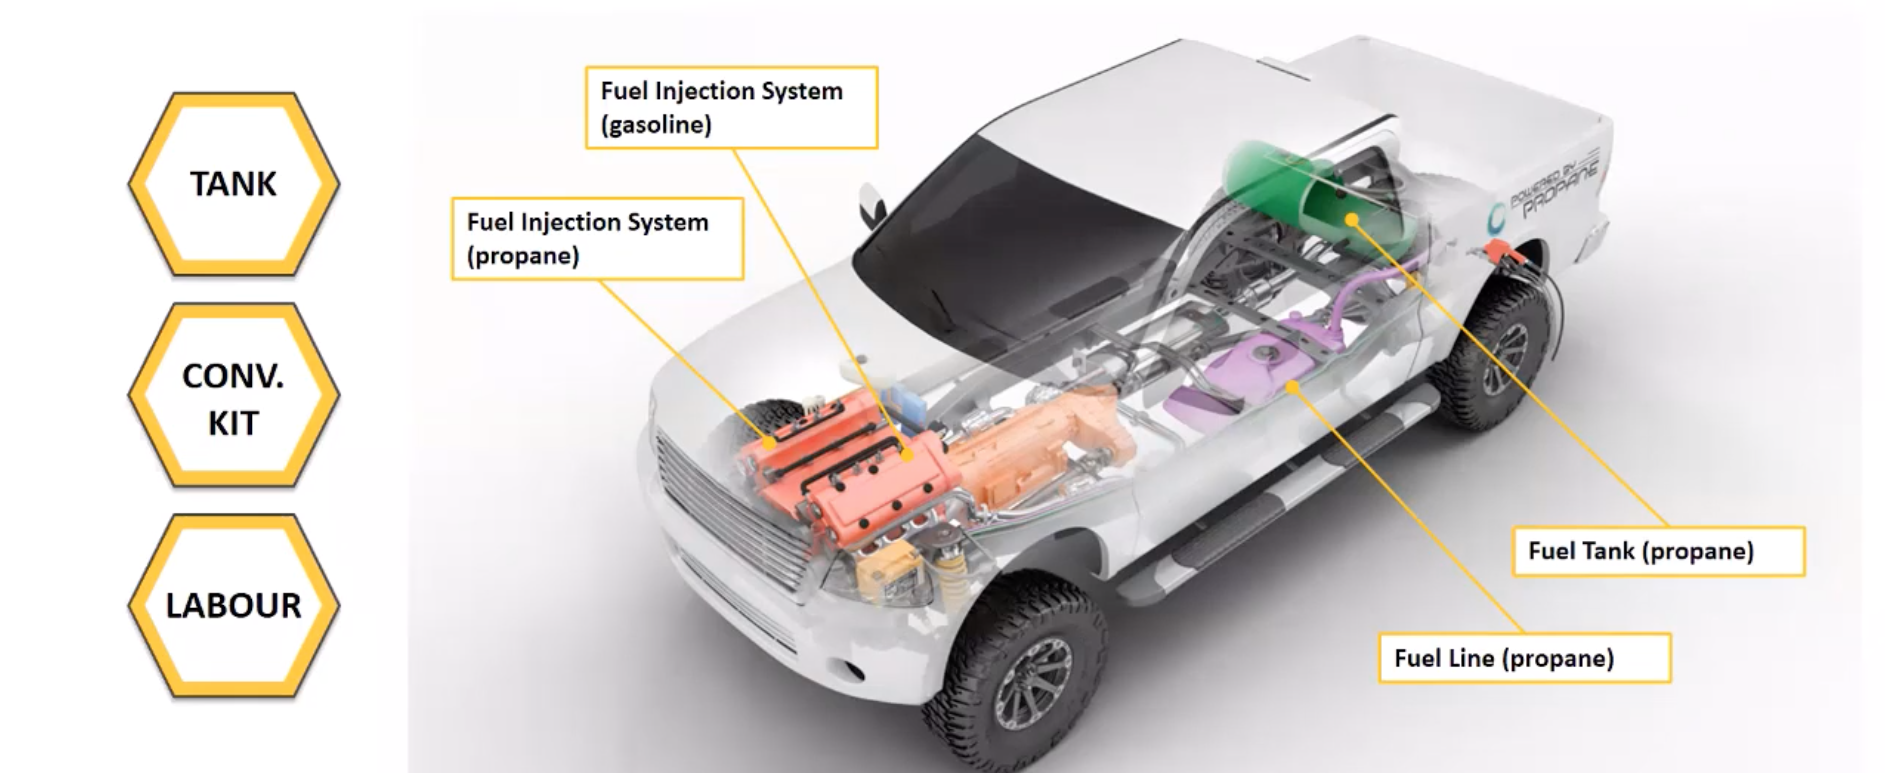 Screenshot from the Webinar of a semi-transparent illustration of a pickup truck showing the placement of propane fuel system.